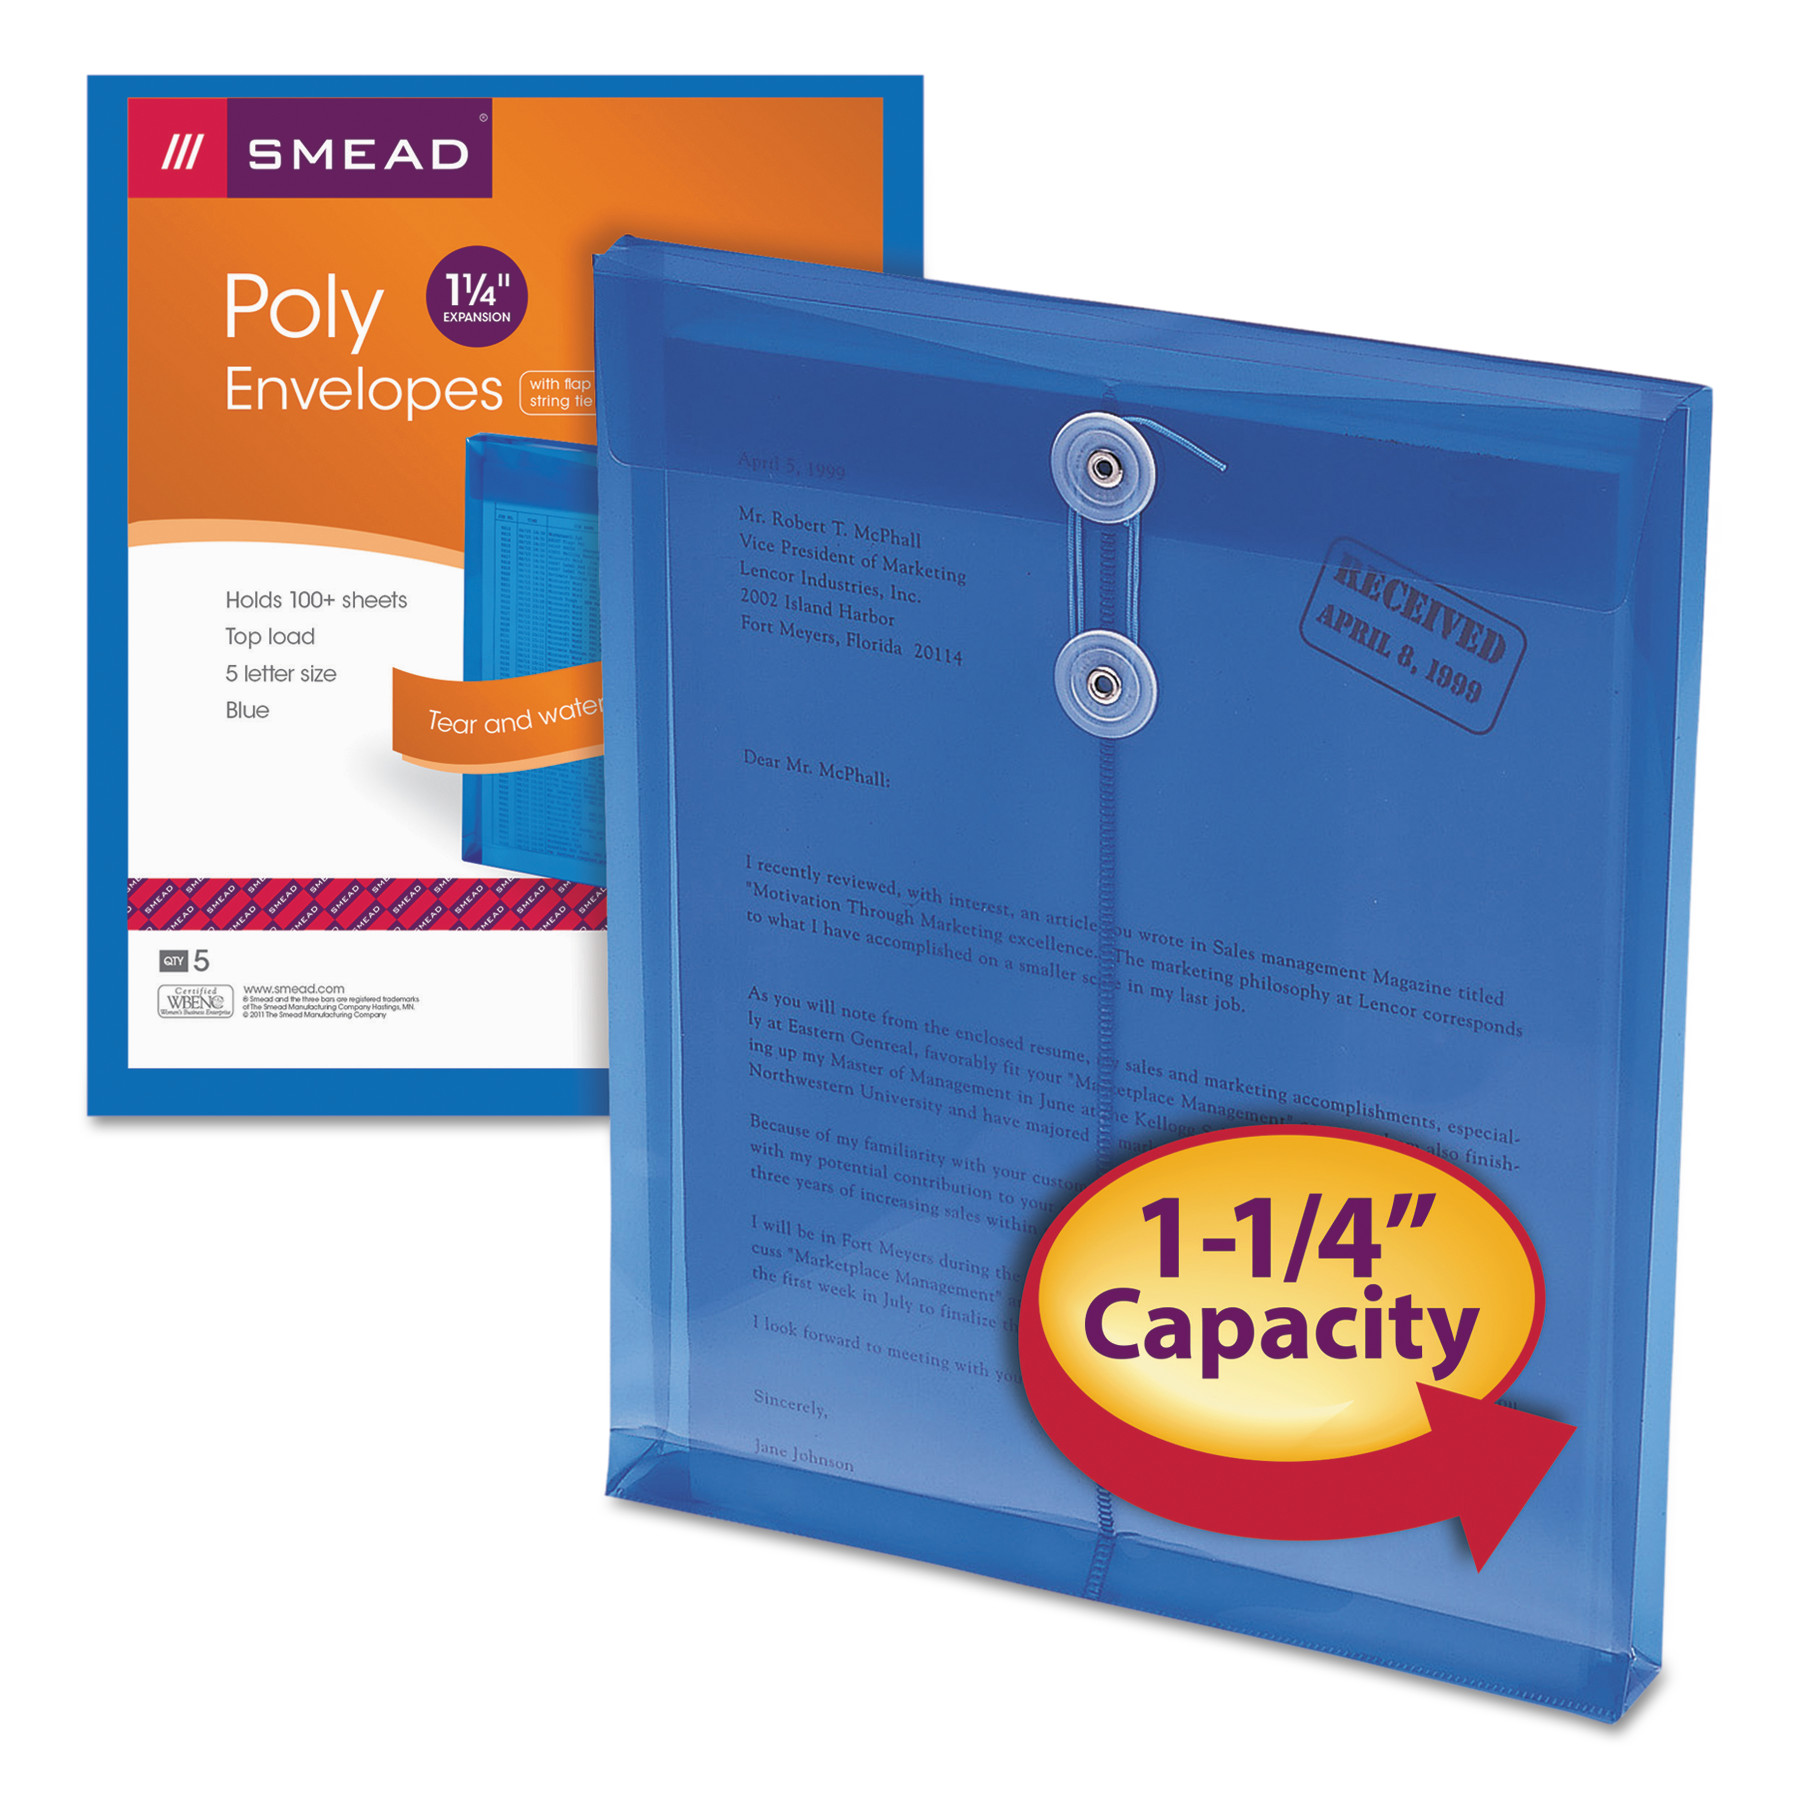 "Smead Poly Envelope, 1-1/4"" Expansion, String-Tie Closure, Top Load, Letter Size, Blue, 5 per Pack (89542)"